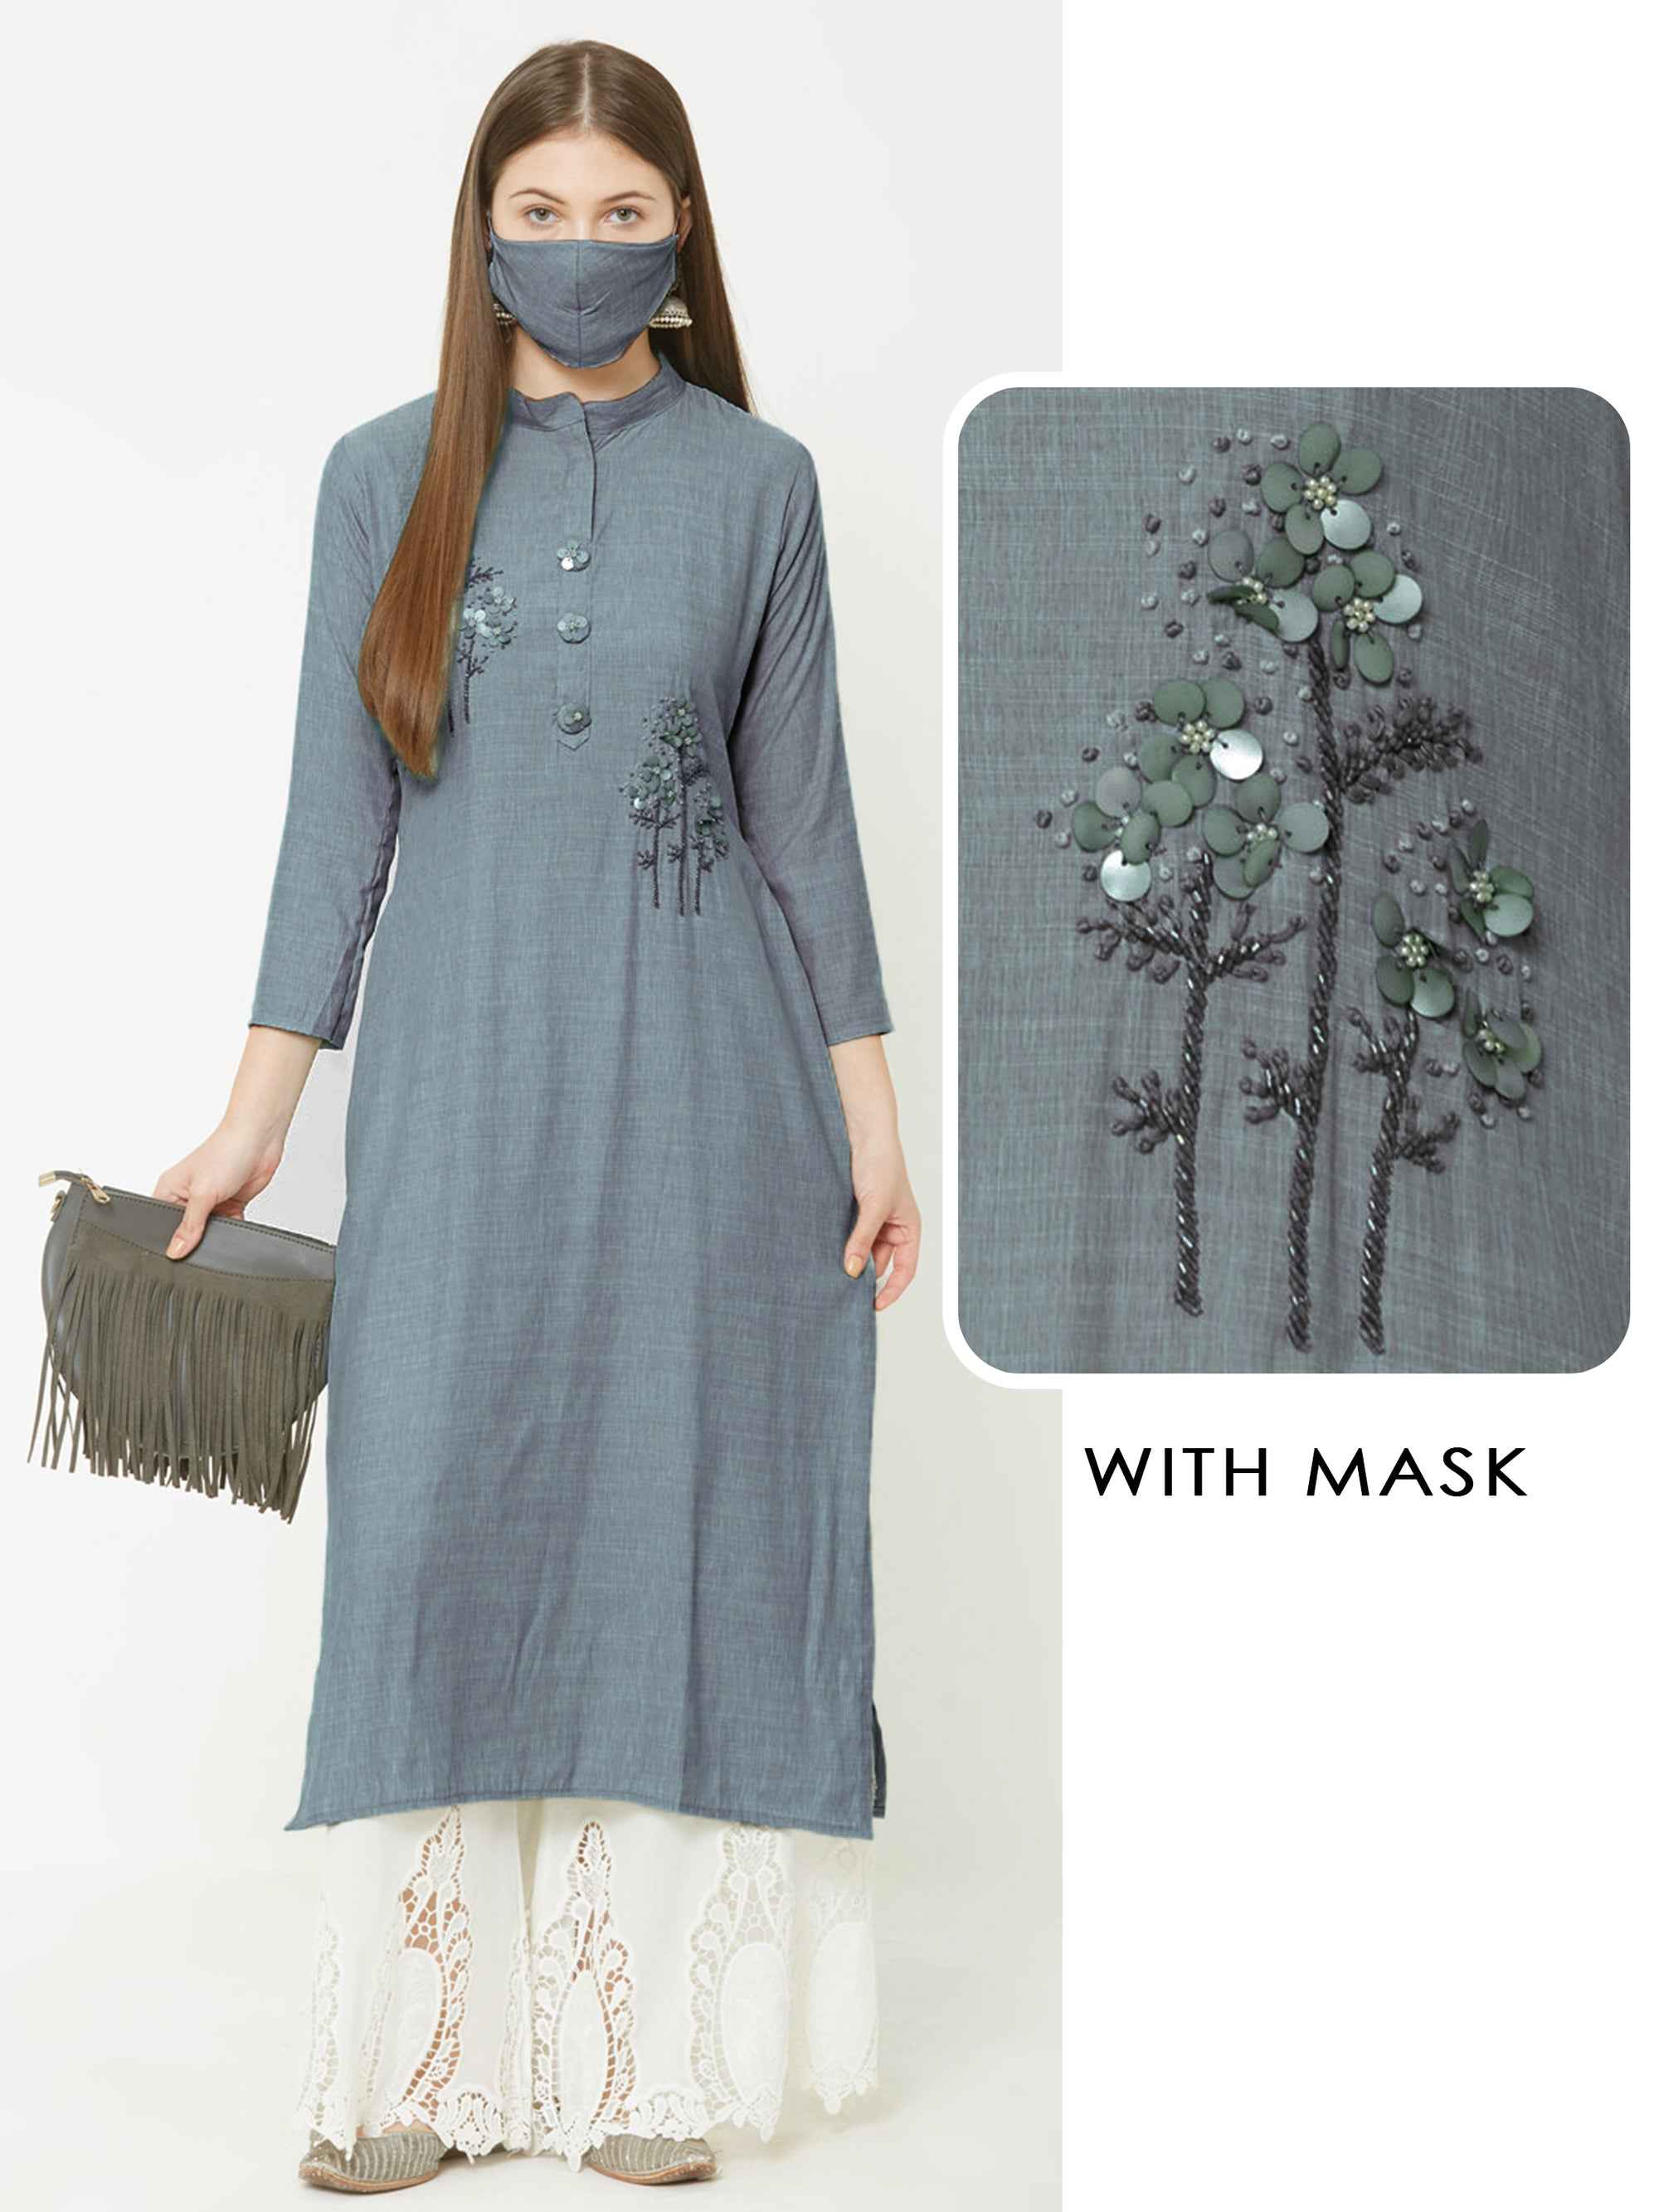 Sequins & Cutdana Embellished Kurta with Matching Mask – Powder Blue